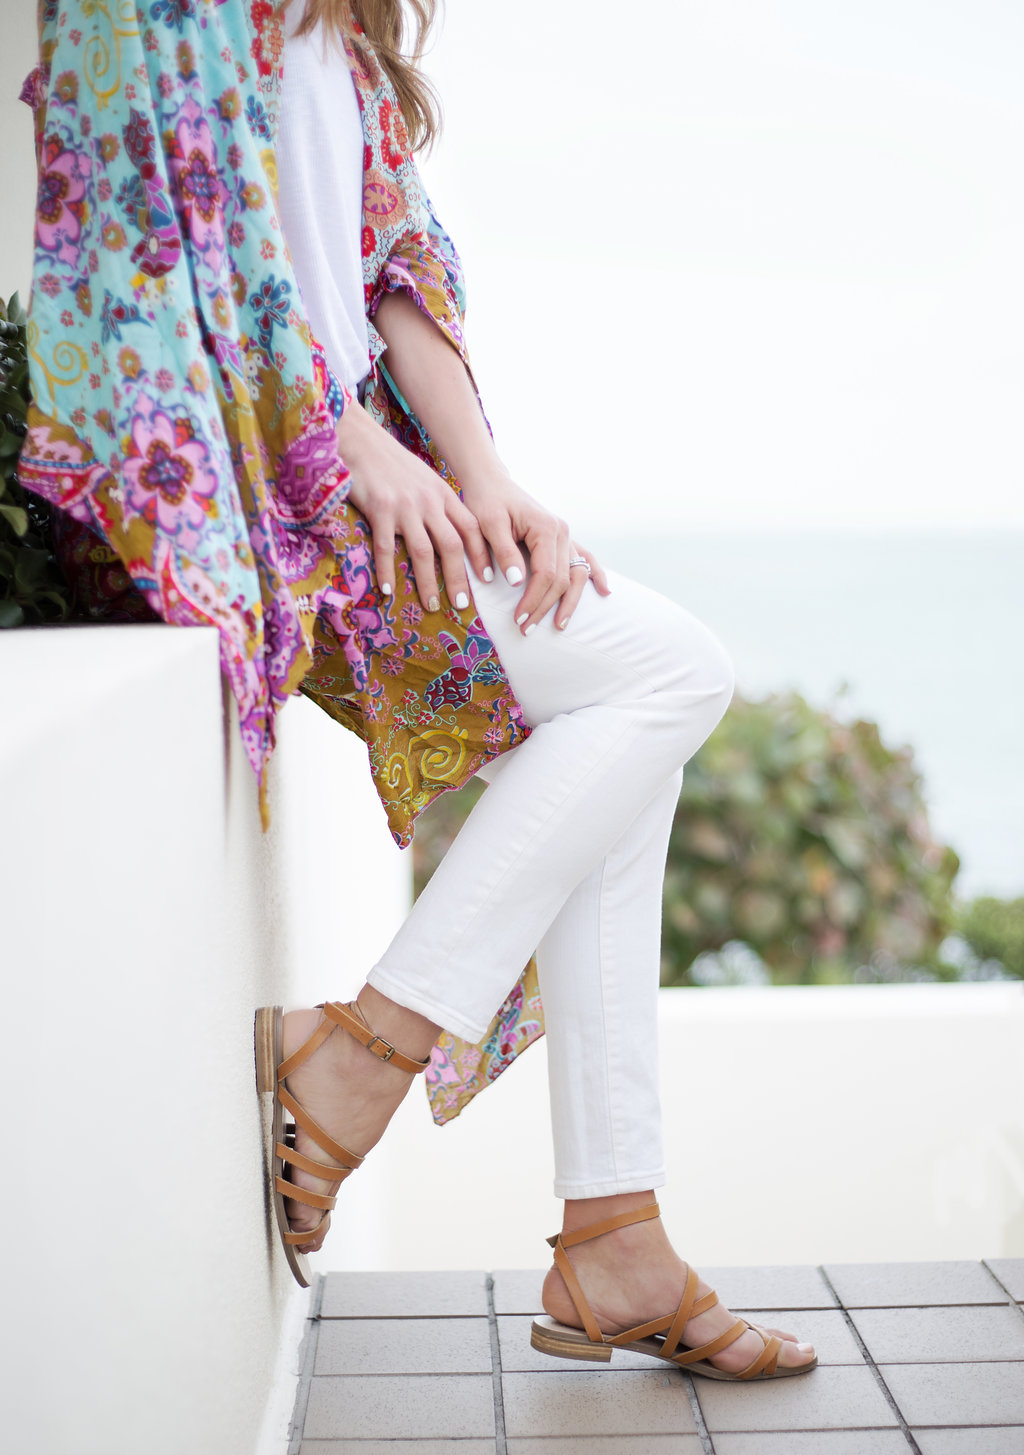 The Motherchic wearing Free People kimono